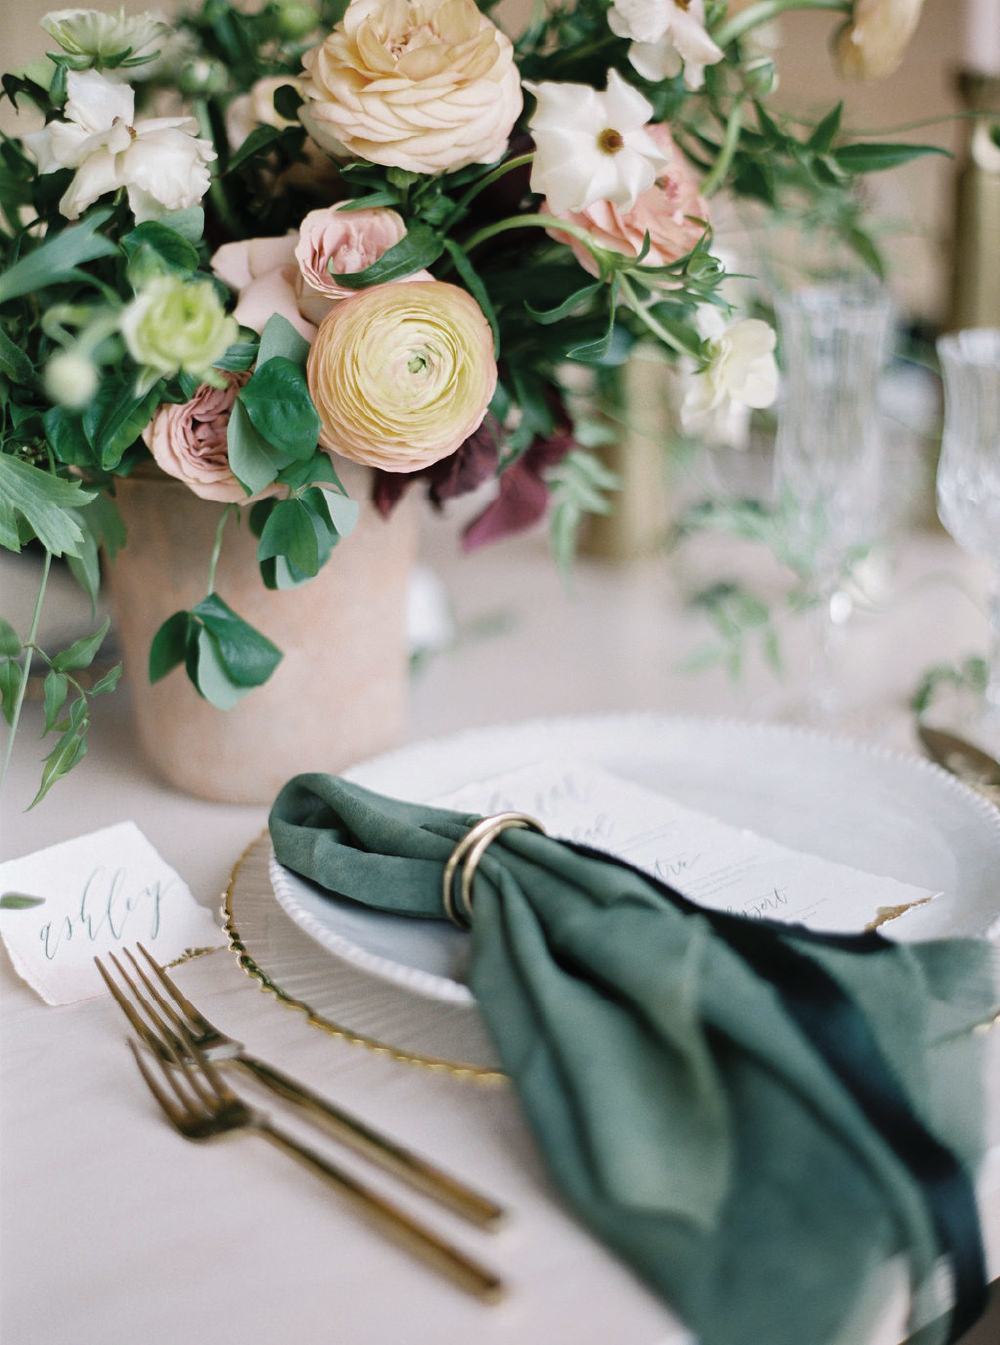 plant dyed napkins, gold flatware, custom calligraphy